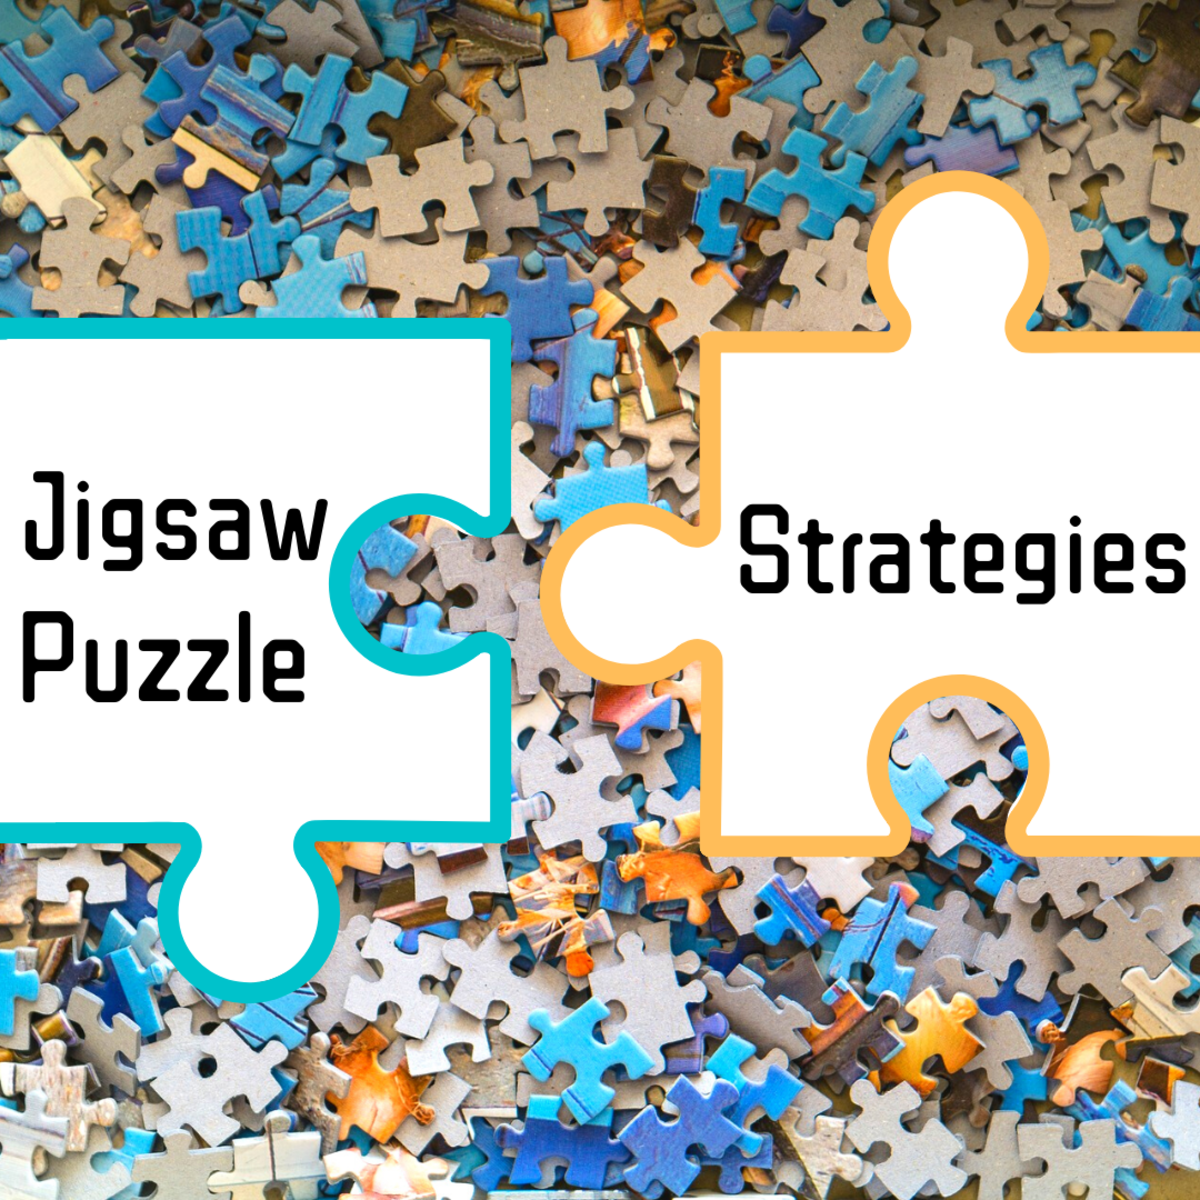 How to Do Jigsaw Puzzles Like an Expert: 6 Tips